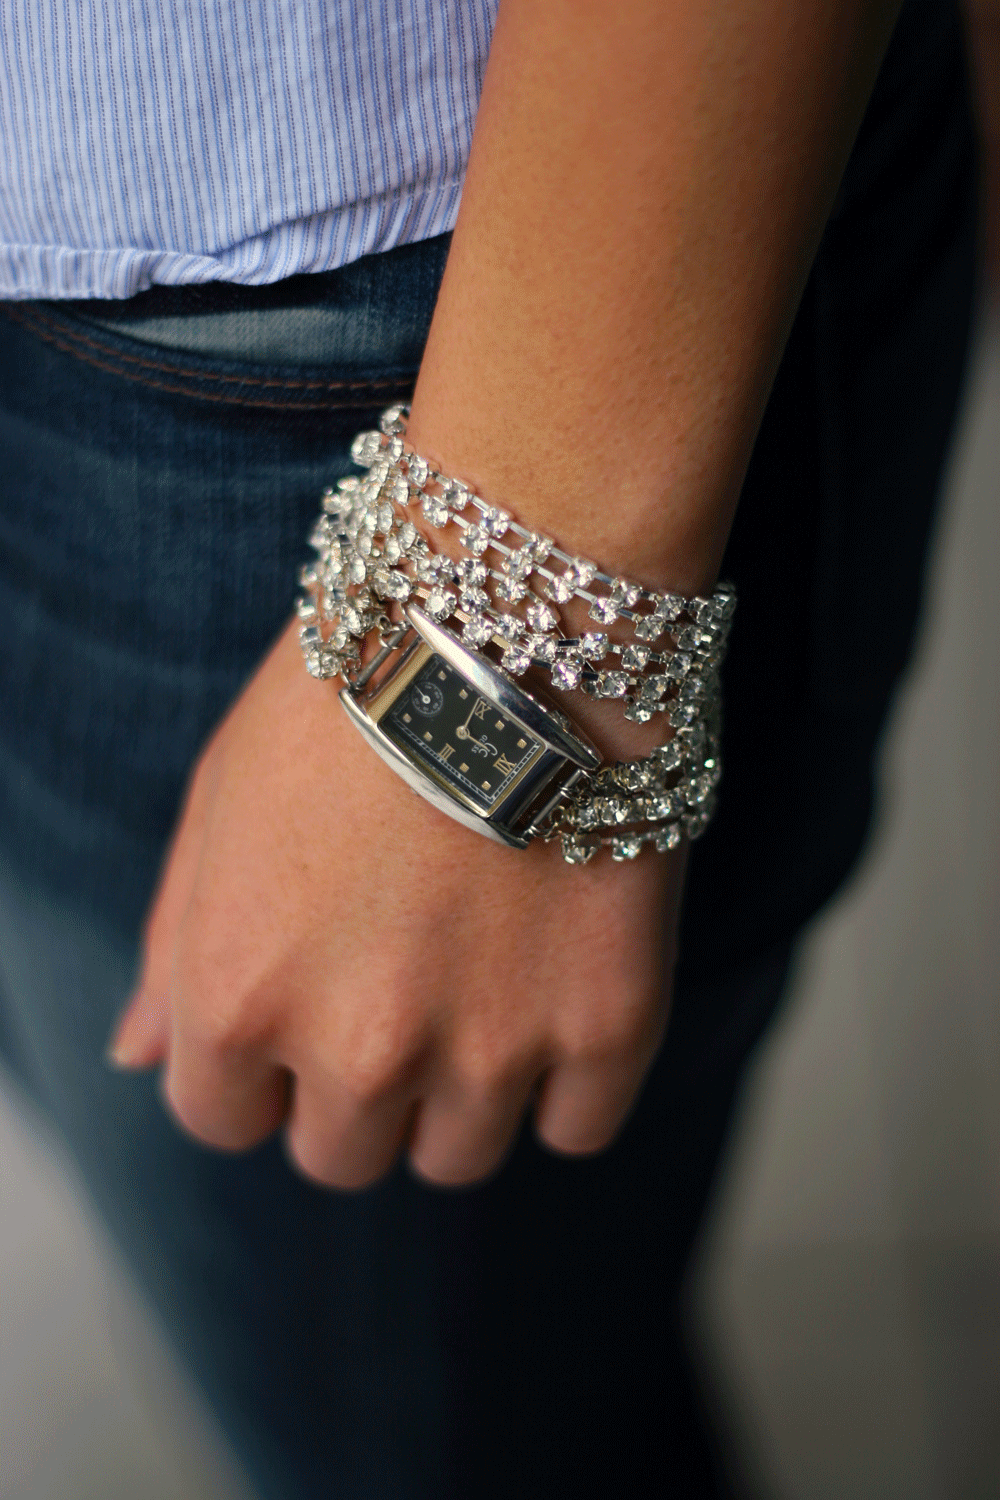 Top 10 DIY Ways to Make New Bracelet Watch From Your Old Watch | Top Inspired